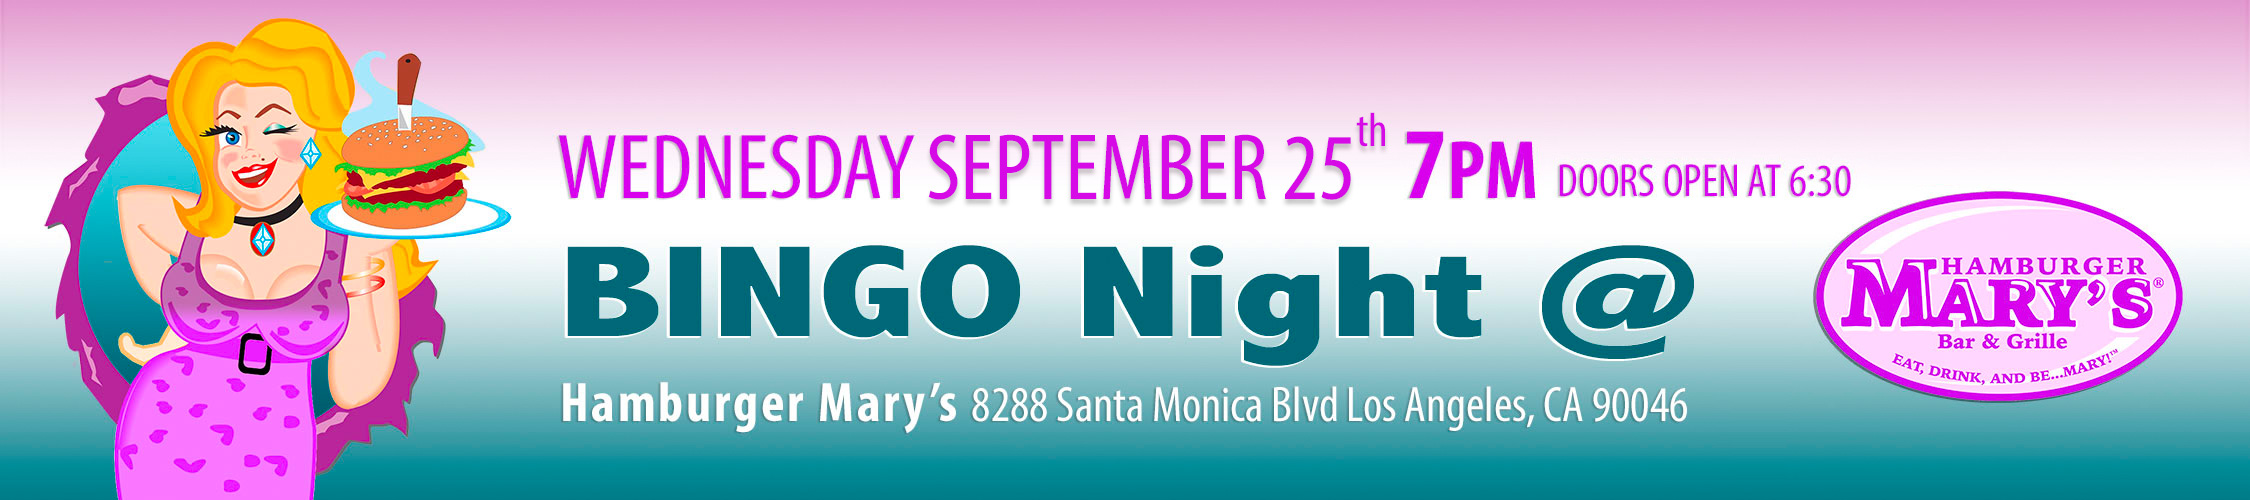 Bingo Night – September 25, 2019 at 7 PM